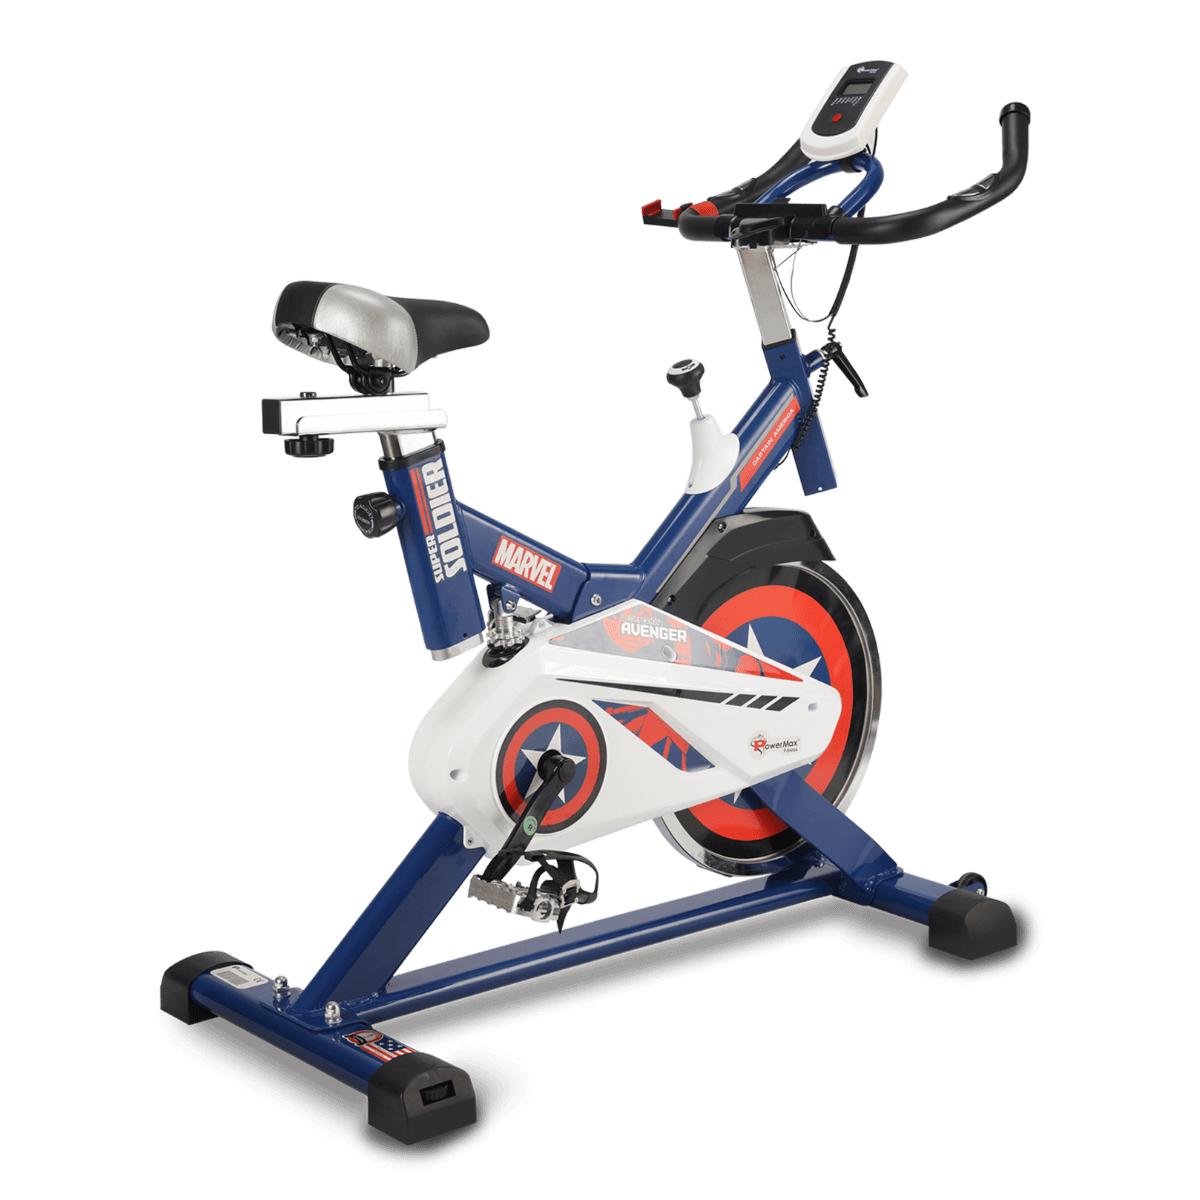 MB-165 Exercise Spin Bike for home use